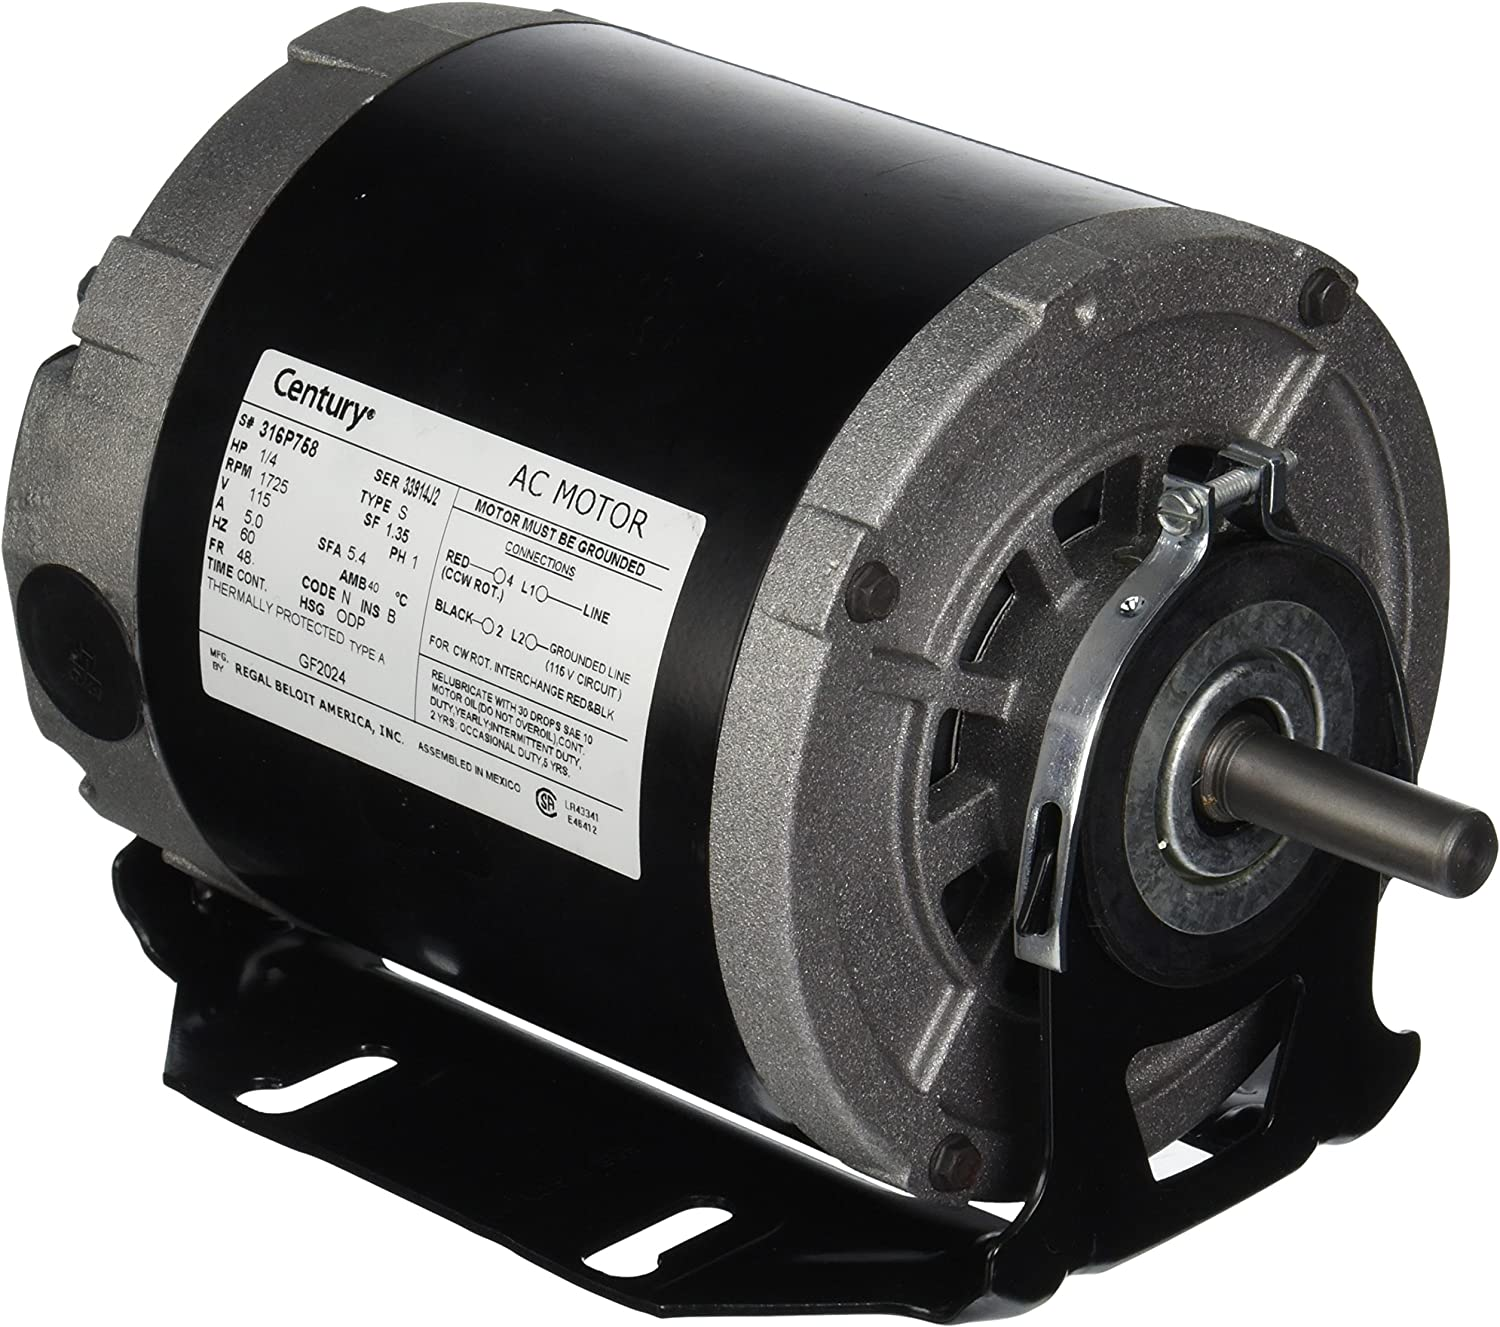 A.O. Smith GF2024 Century Resilient Base Split Phase Electric Motor, 115 Vac, 5.4 A, 1/4 Hp, 1725 Rpm - Electric Fan Motors -